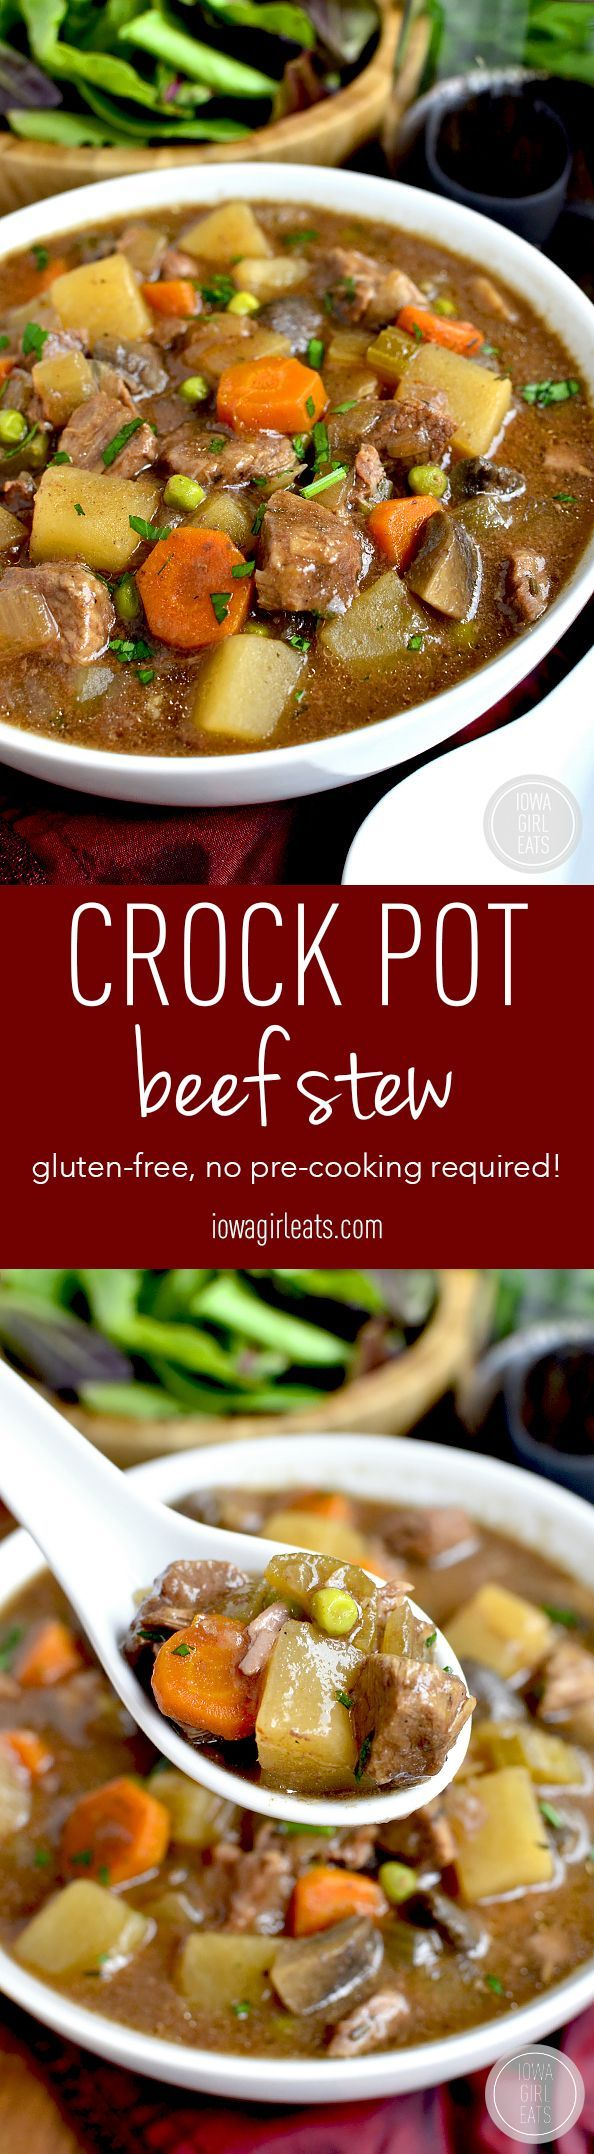 Crock pot beef stew.